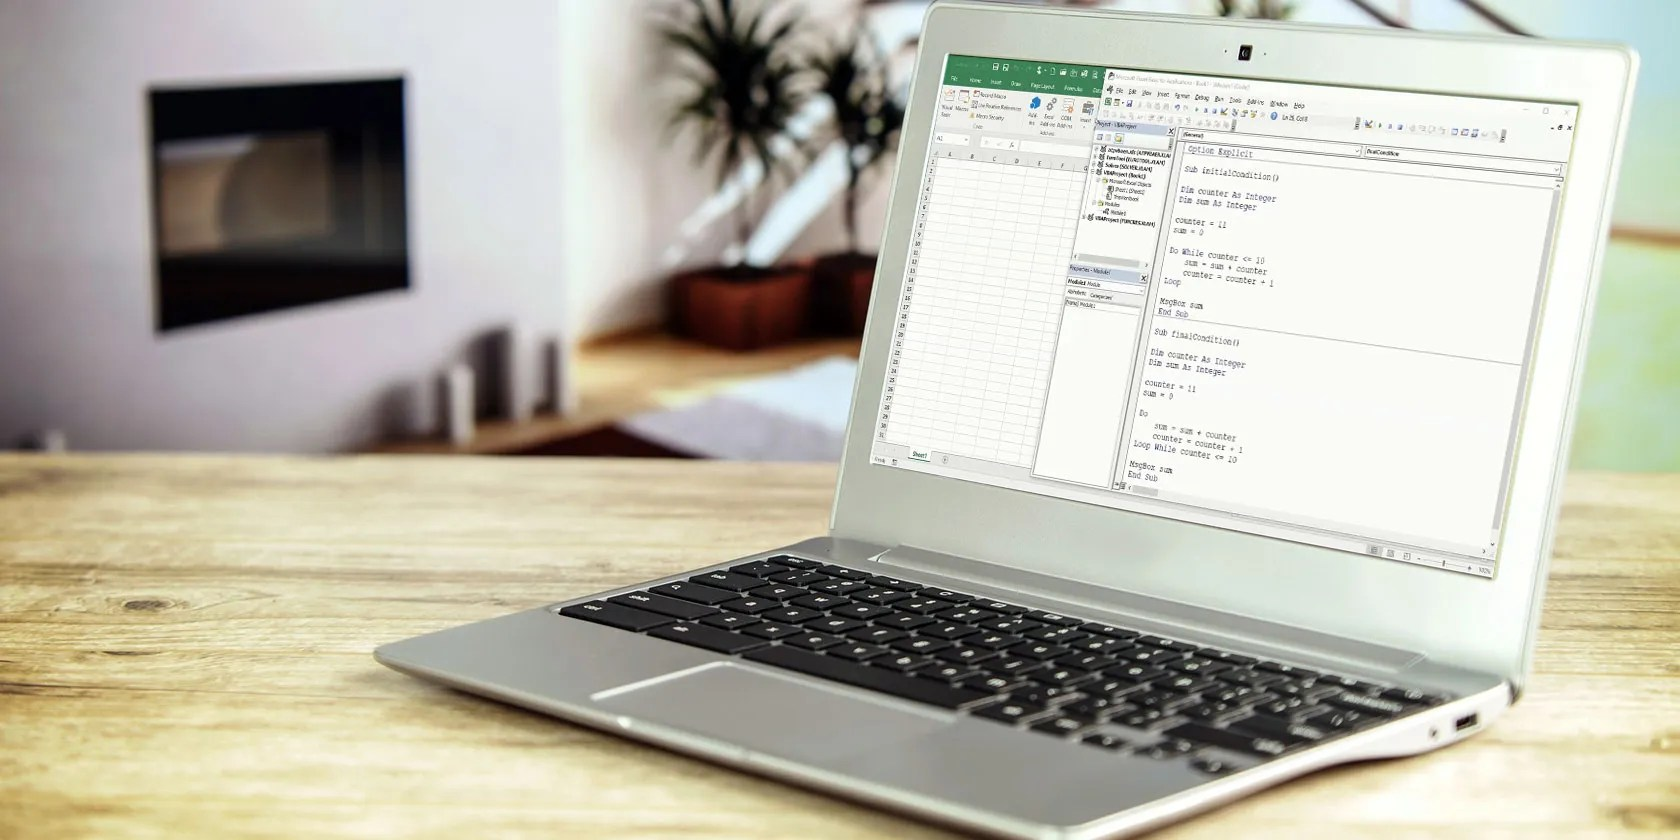 How You Can Make Your Own Simple App With Vba